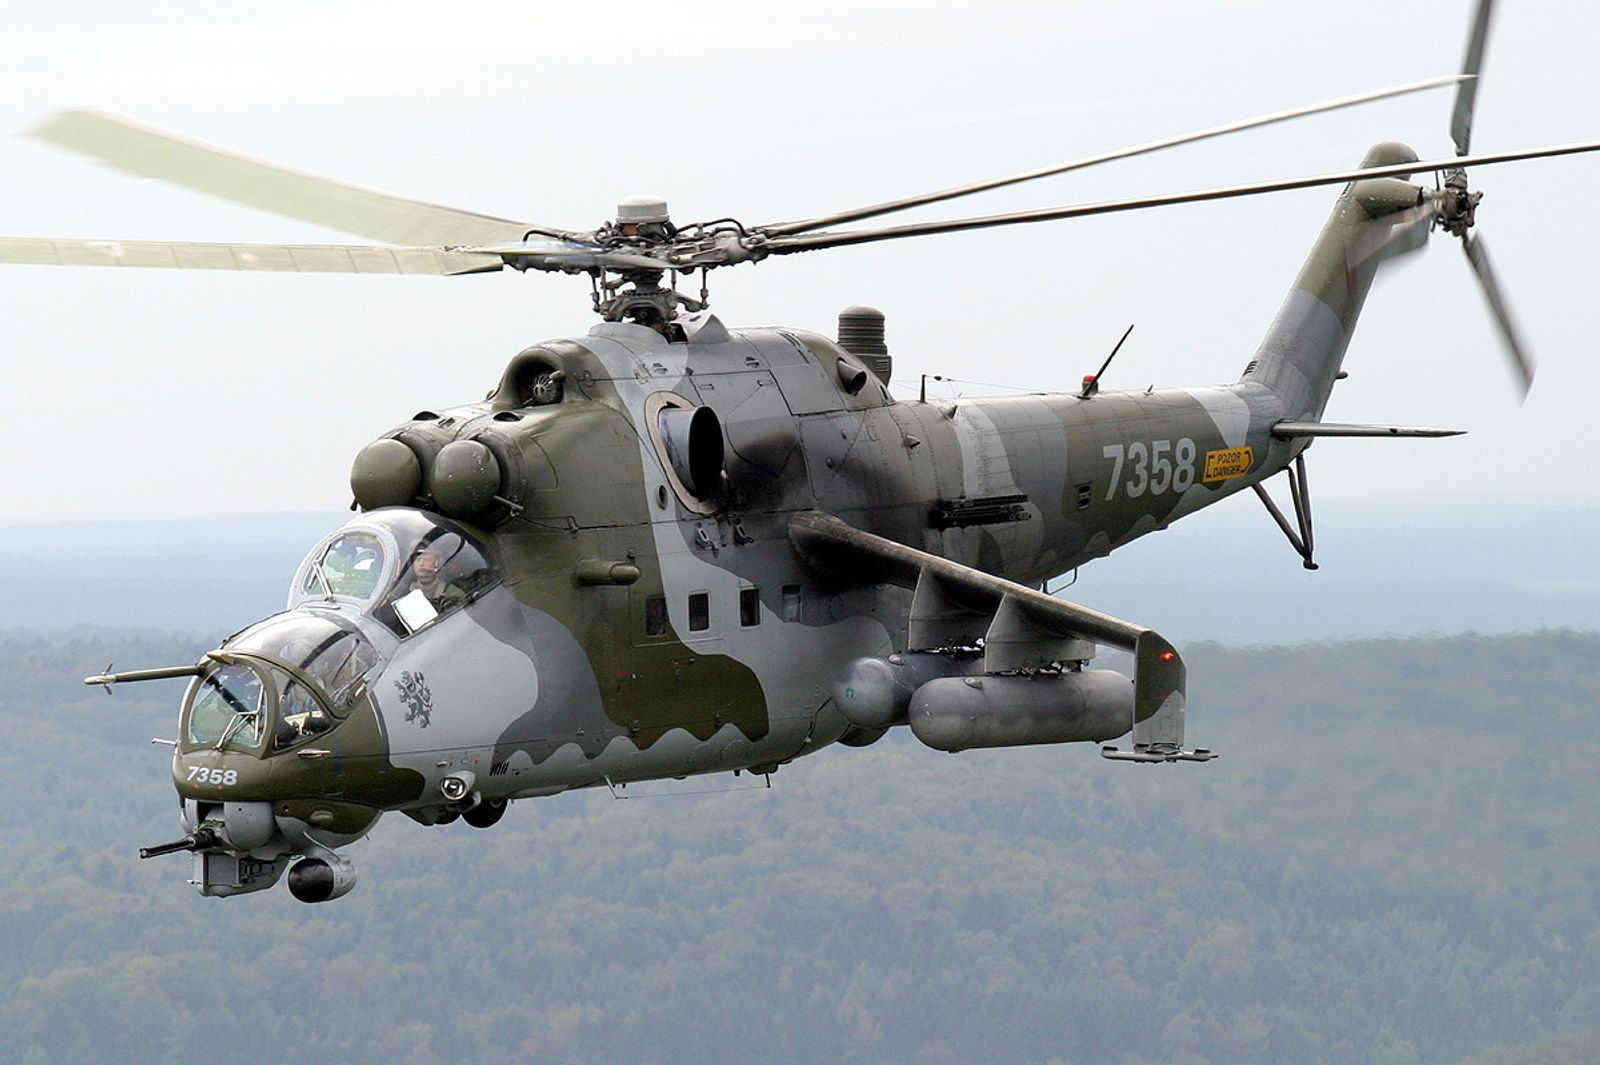 hind helicopter - Google Search